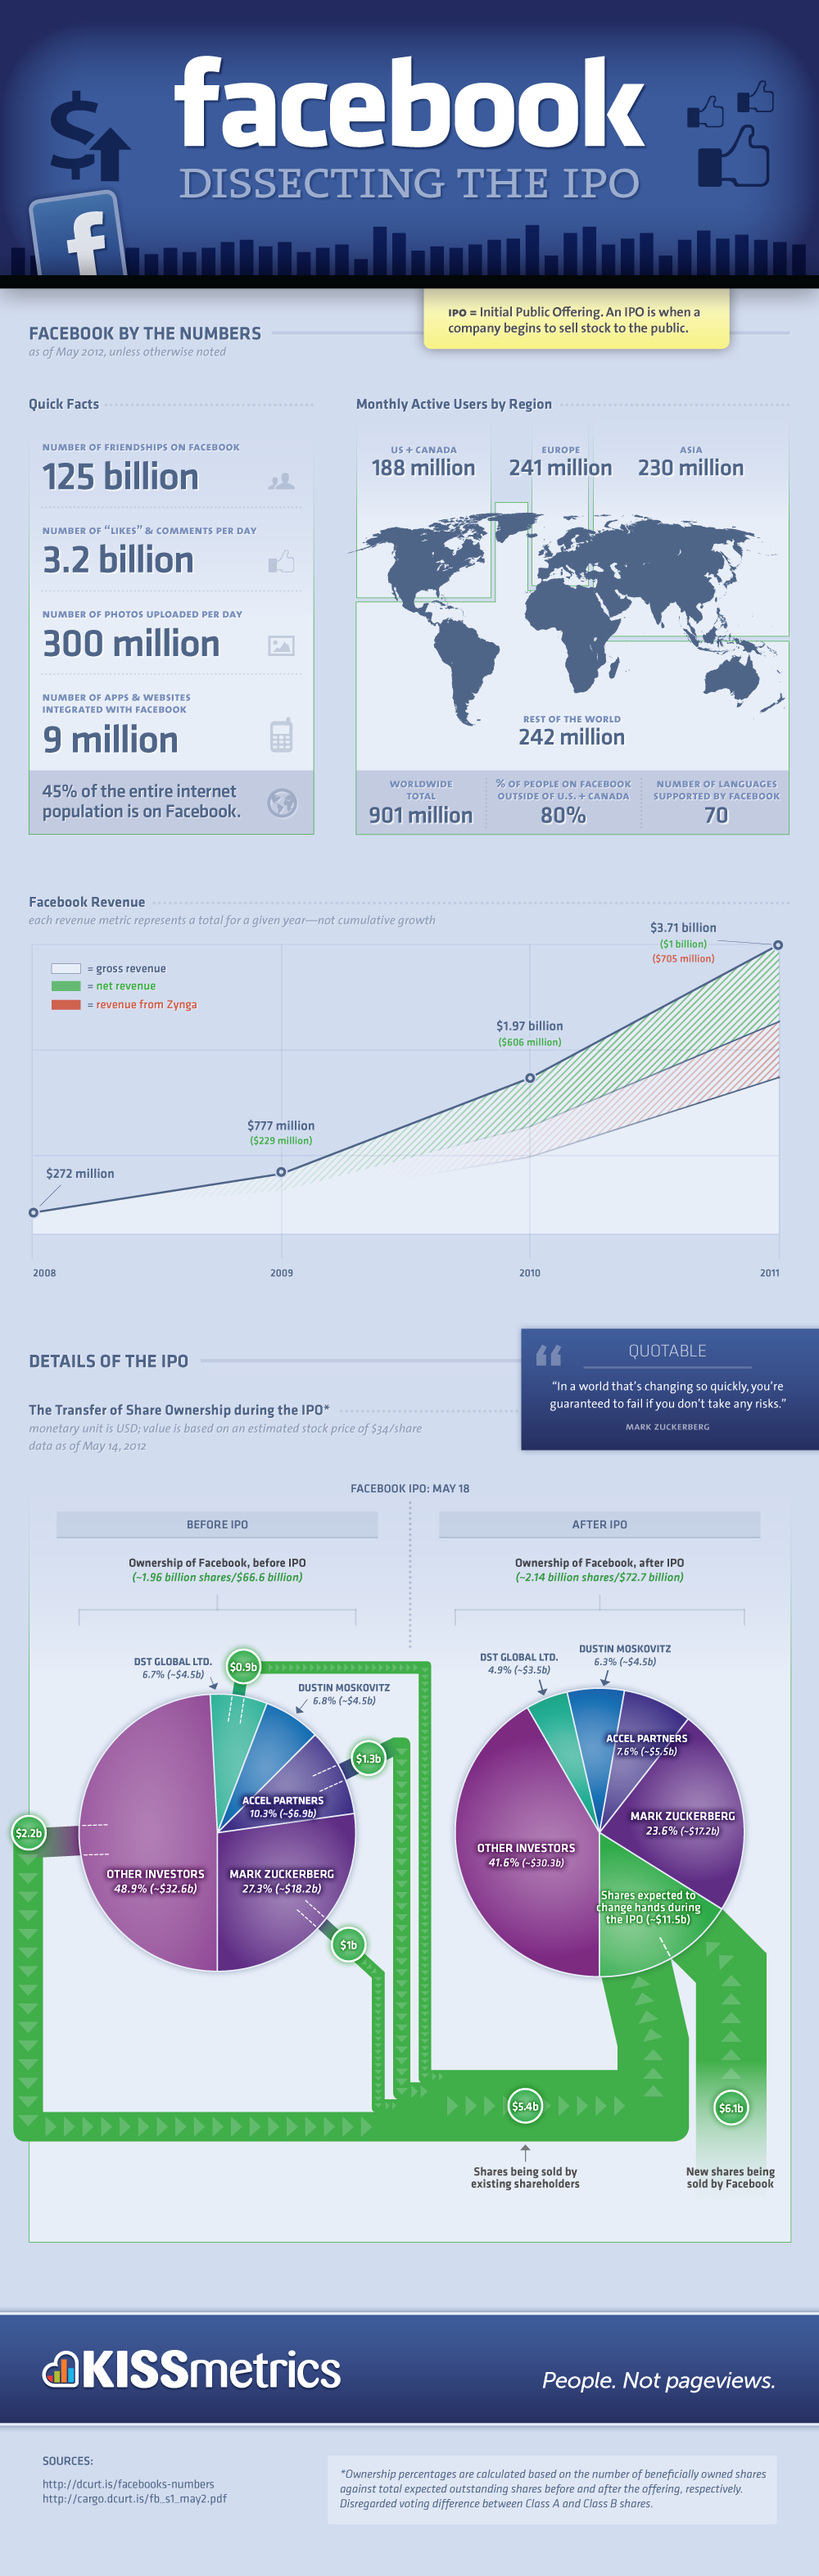 Facebook Dissecting The Ipo Infographic Facebook Marketing Infographic Infographic Marketing Social Media Infographic